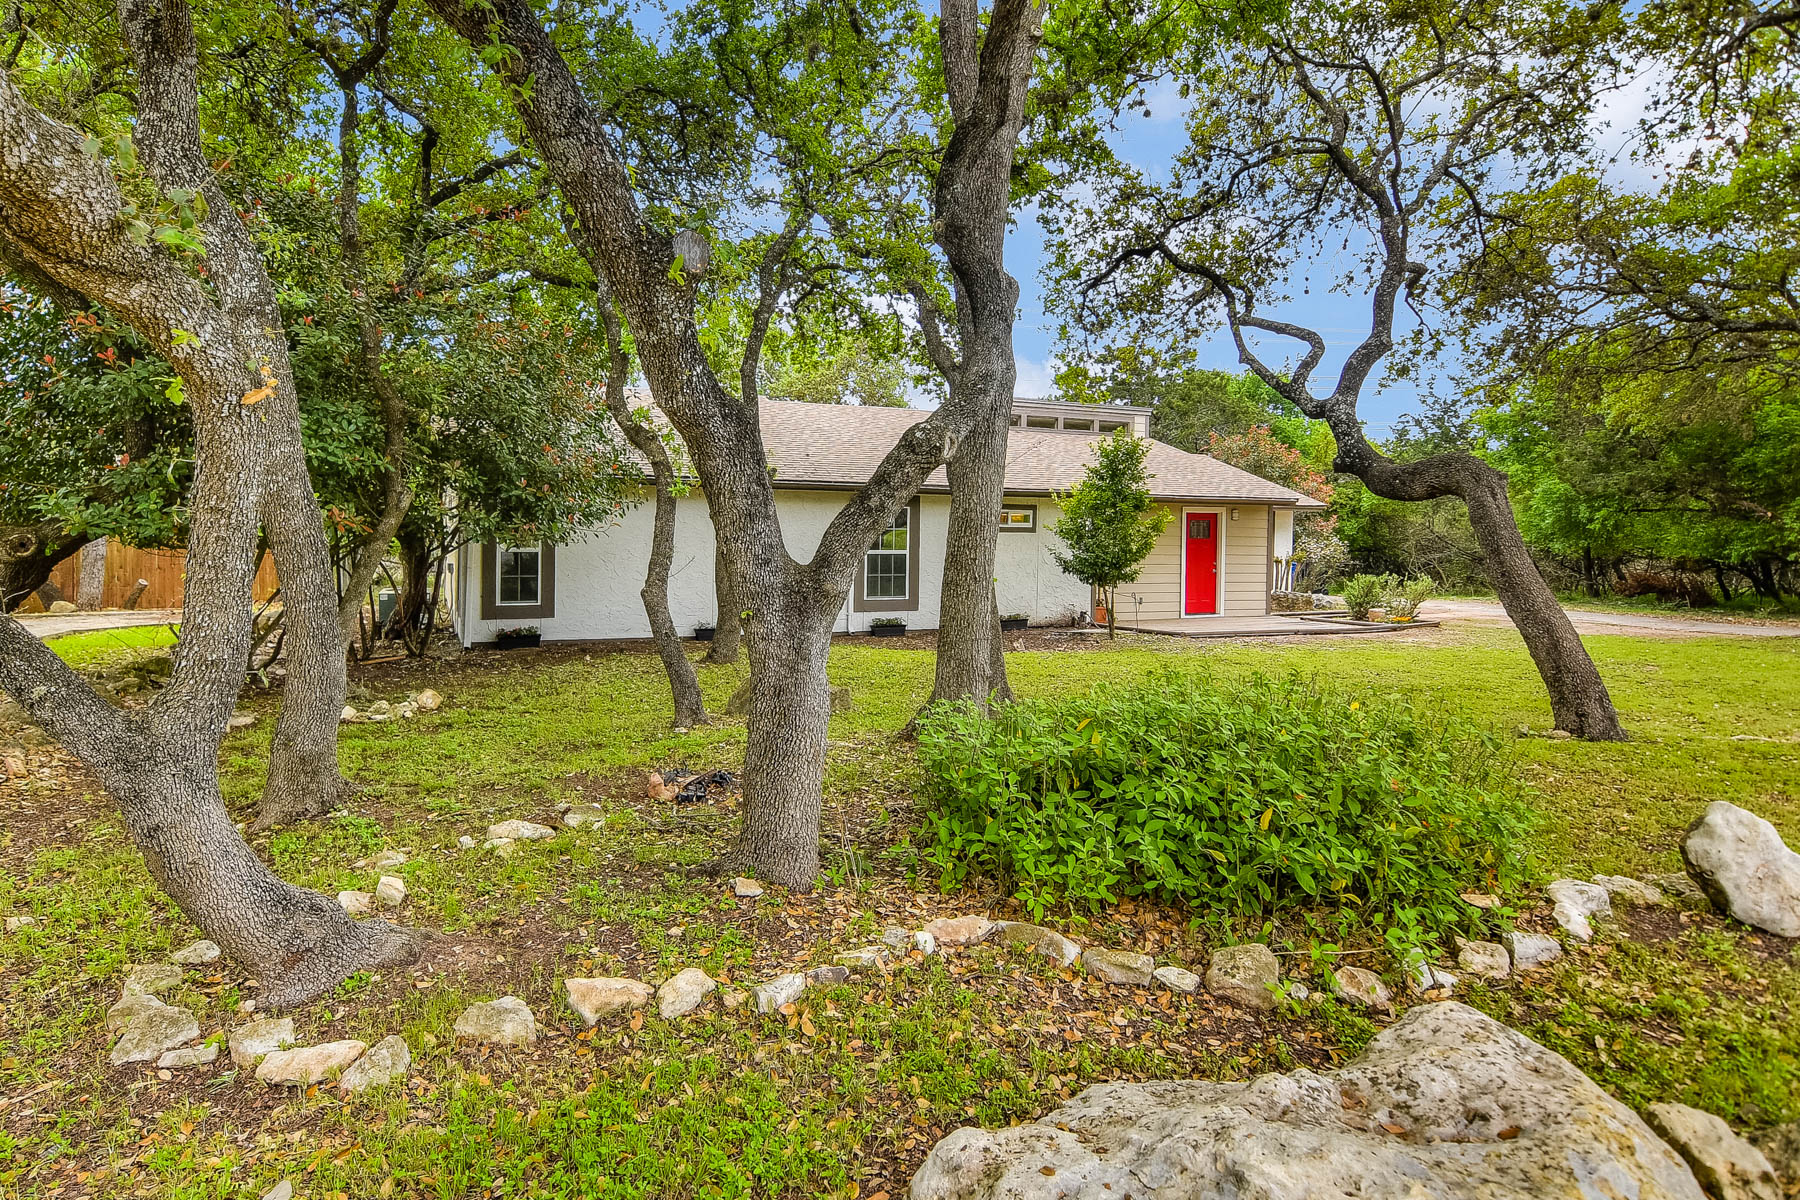 Single Family Home for Sale at Beautifully Remodeled Home in Oakhaven Heights 2218 Pipestone Dr San Antonio, Texas, 78232 United States